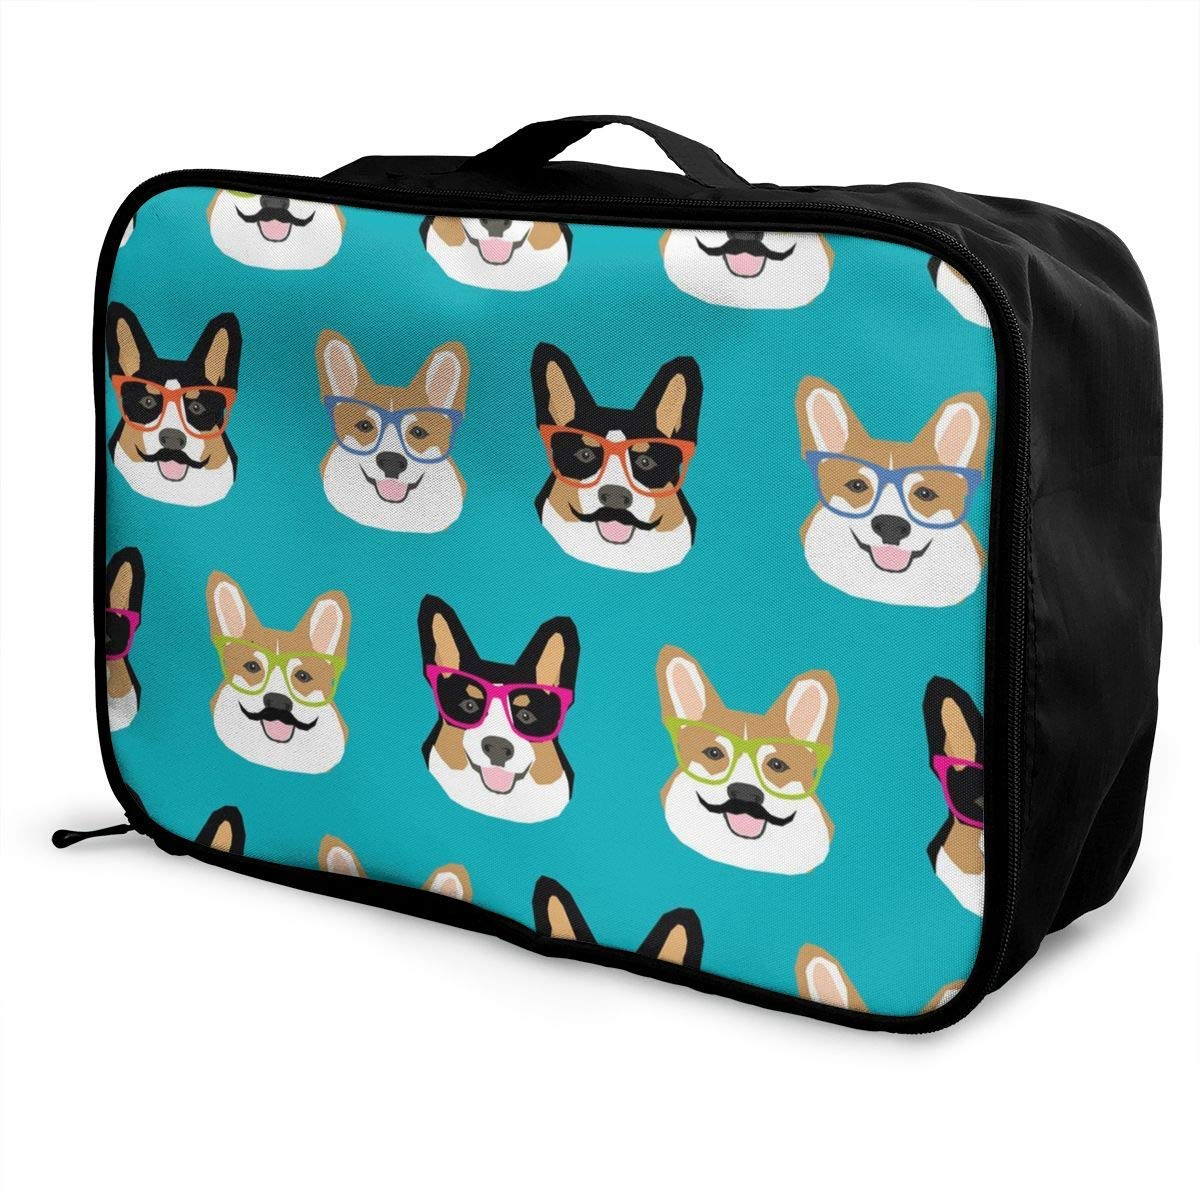 Cute Corgi Glasses And Mustaches Travel Duffel Bag Waterproof Fashion Lightweight Large Capacity Portable Duffel Bag for Men /& Women JTRVW Luggage Bags for Travel